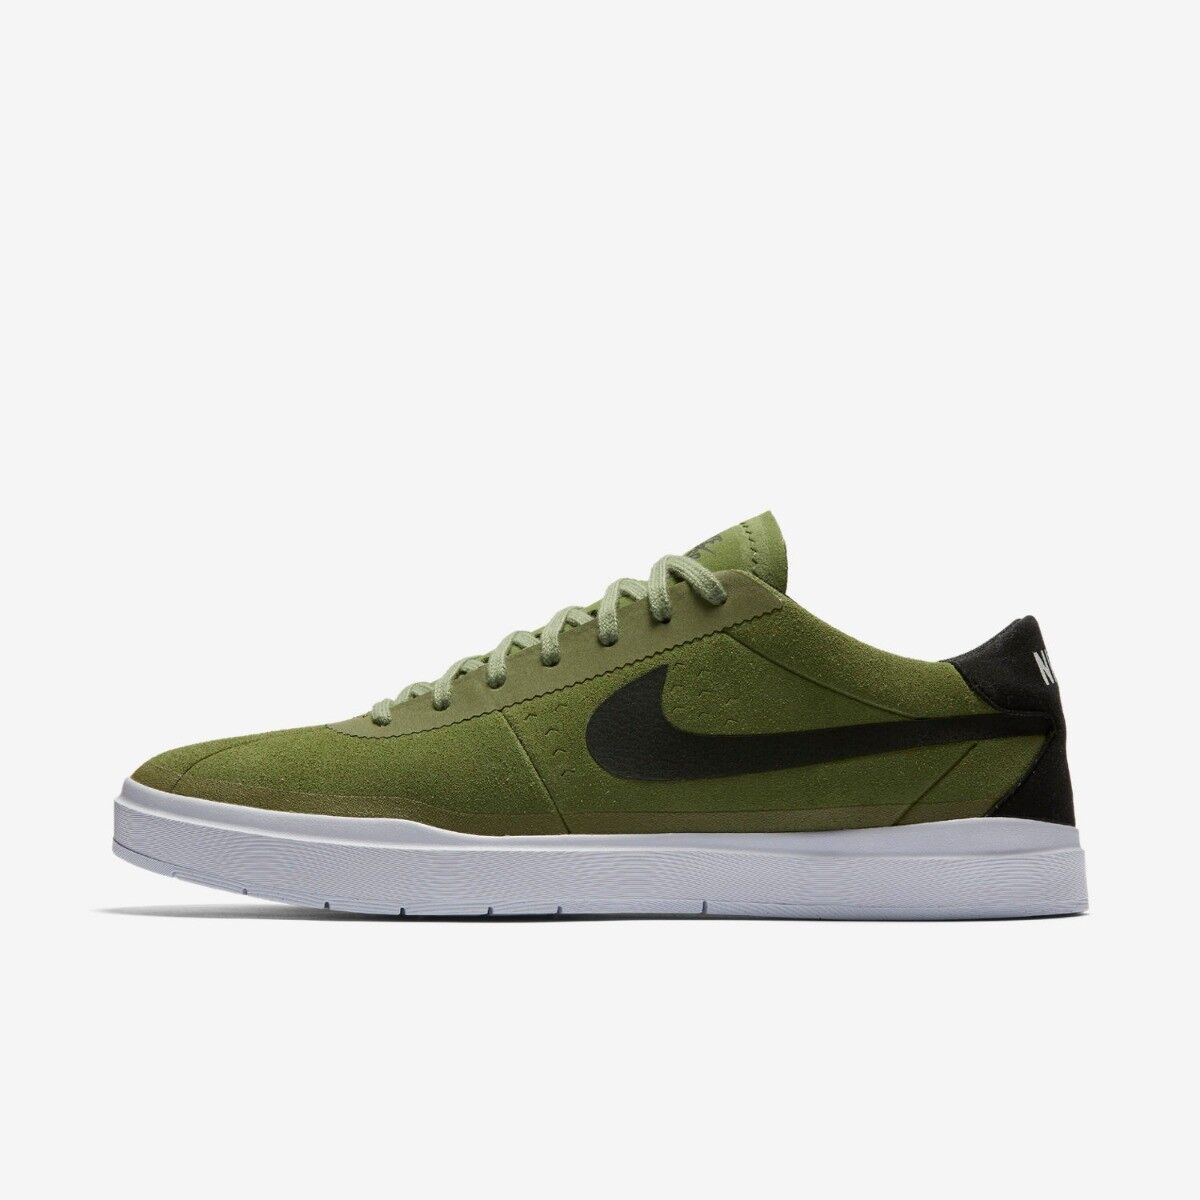 NIKE SB BRUIN HYPERFEEL PALM GREEN BLACK WHITE SIZE 6 7.5 9 NEW